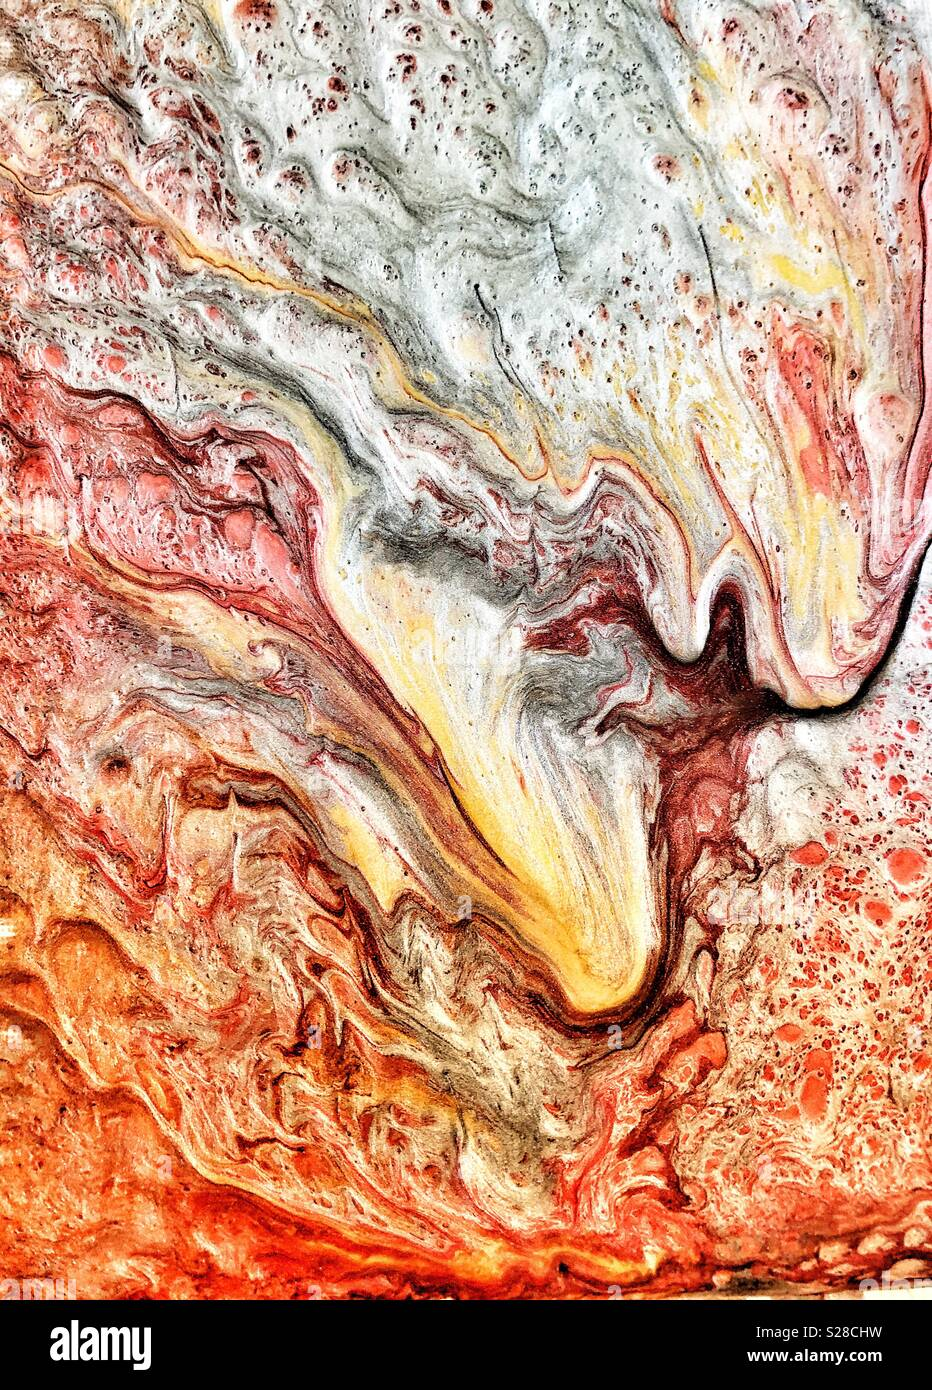 Abstract Bubbling paint effect on canvas - Stock Image